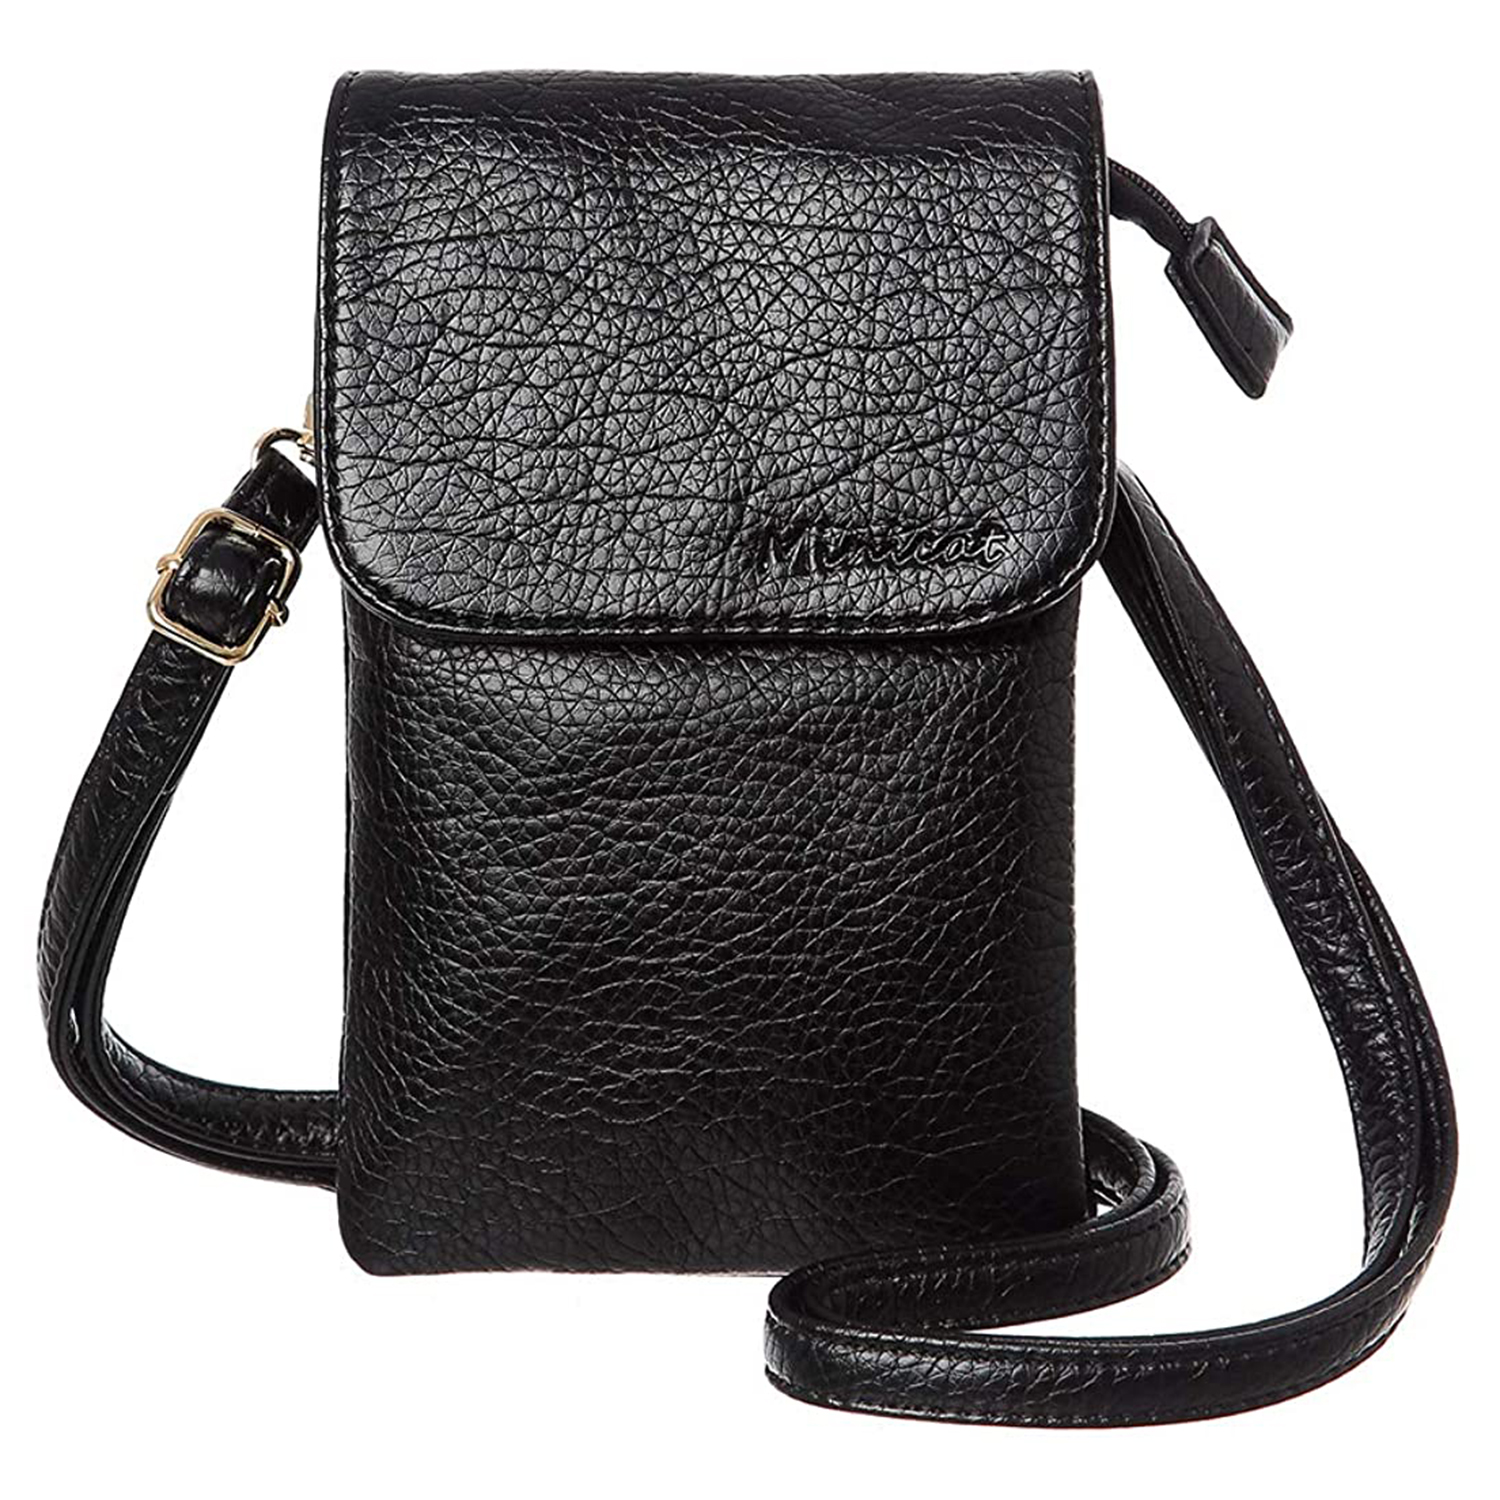 MINICAT Roomy Pockets Series Small Crossbody Bags